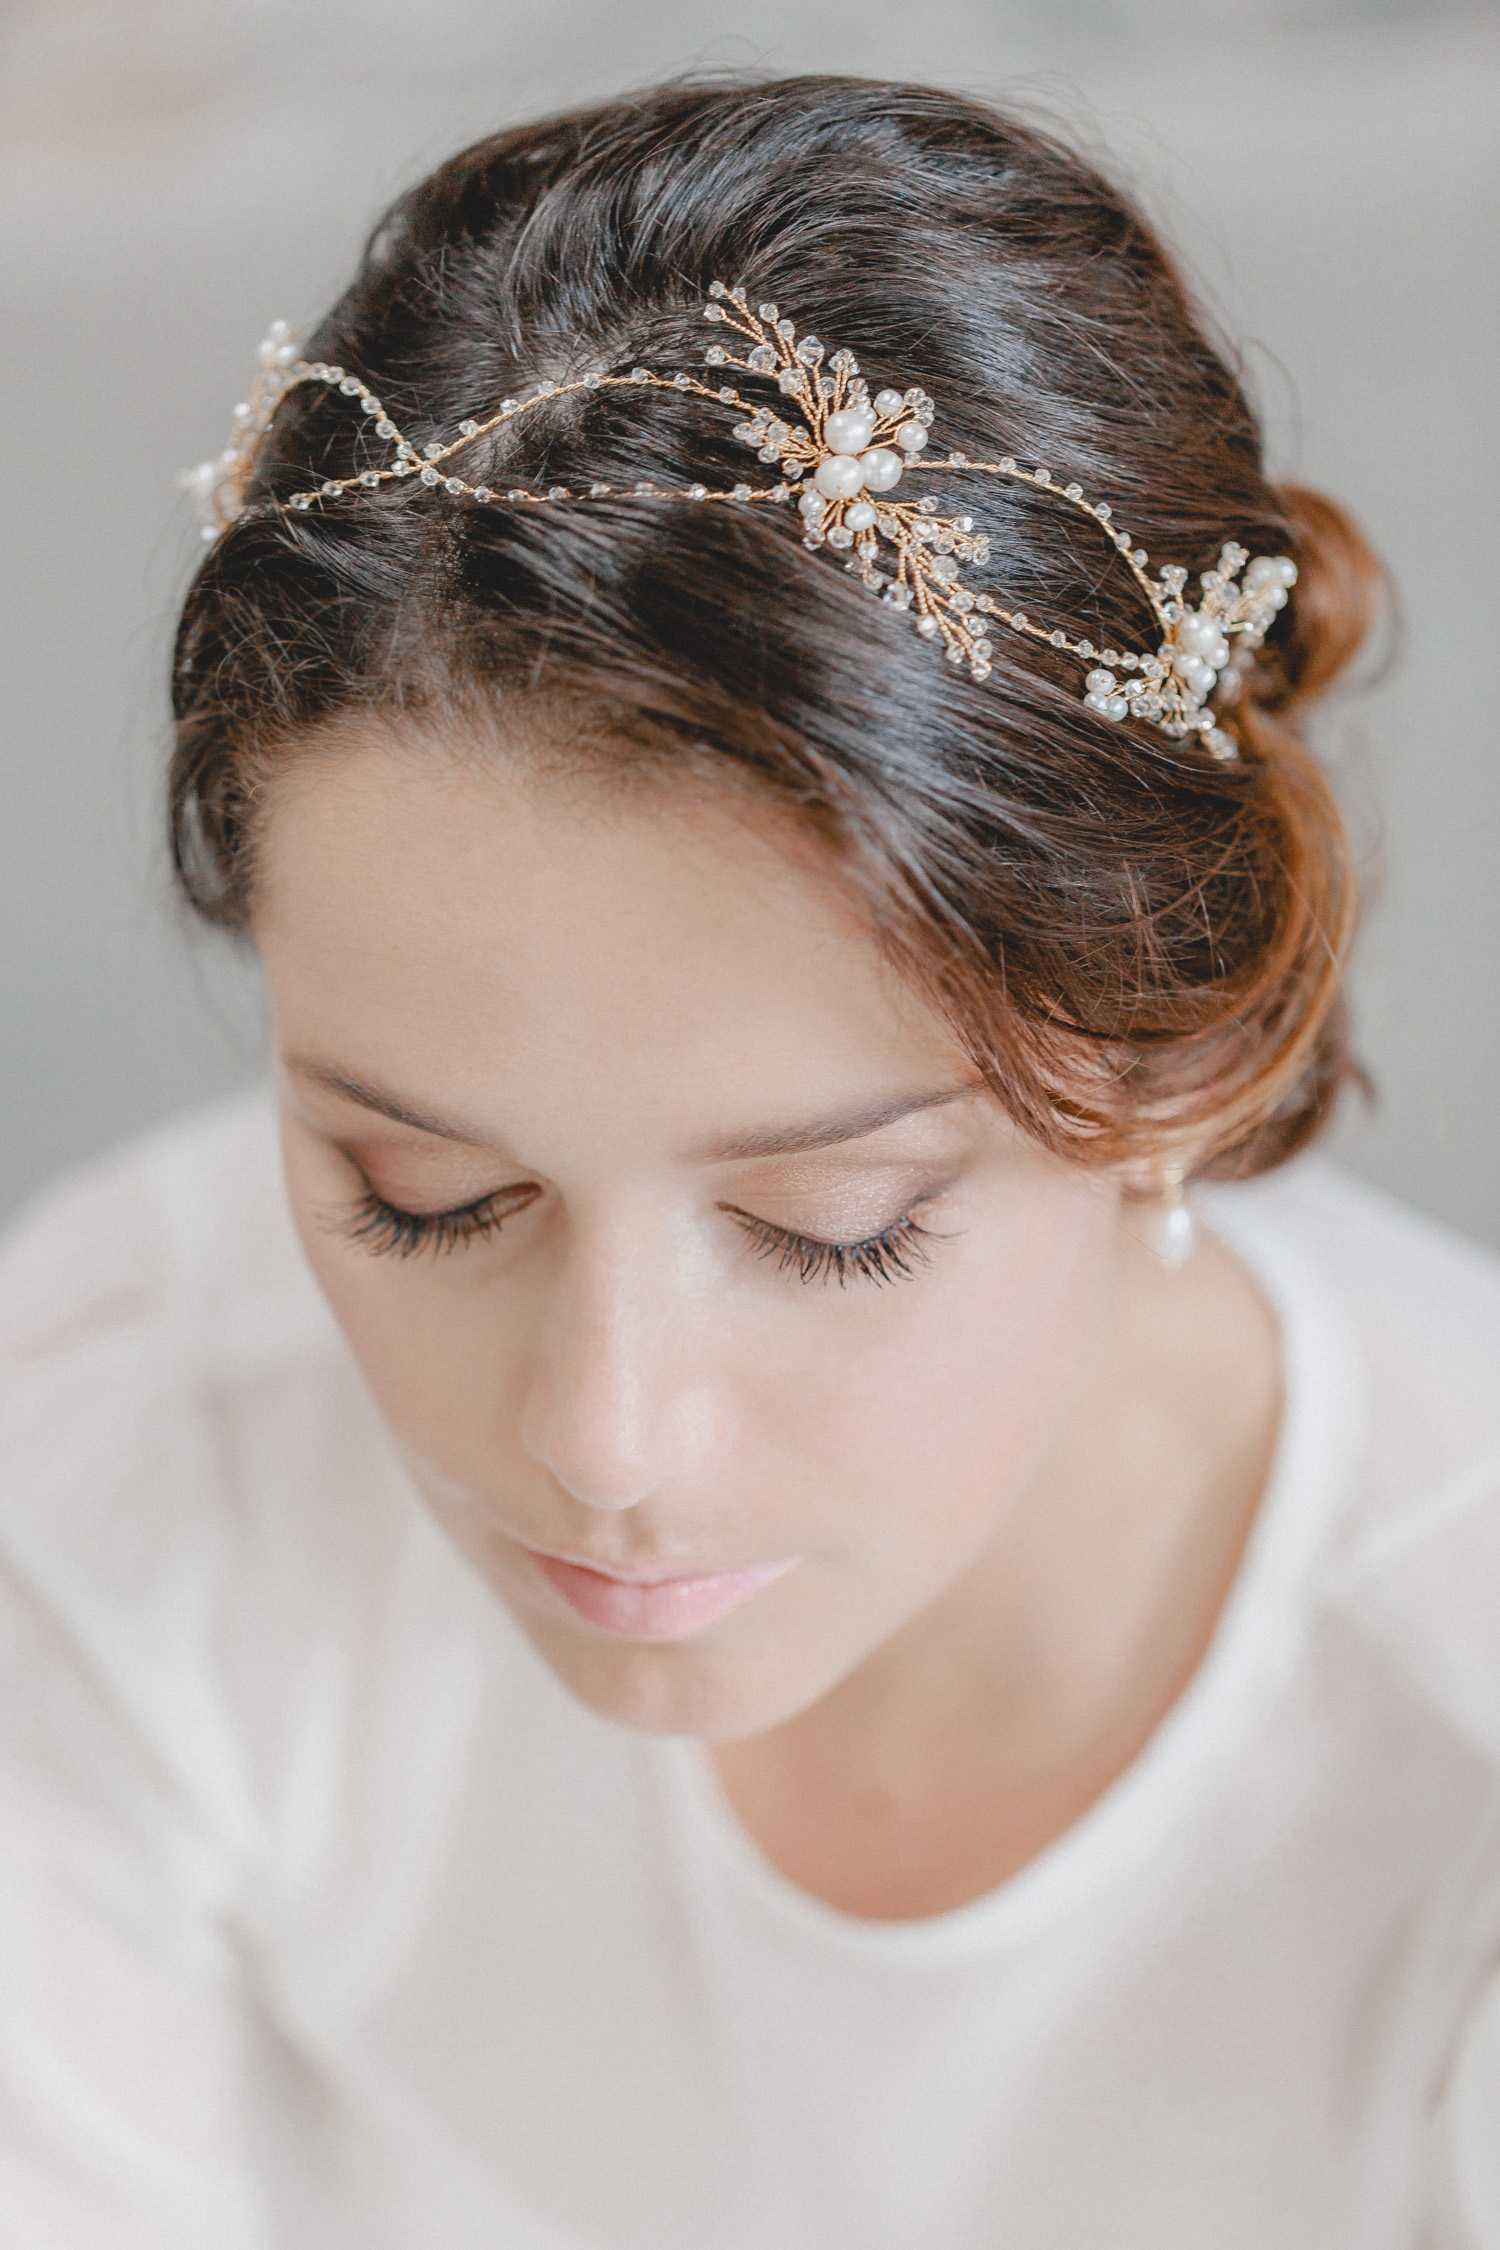 Pure luxury! With countless sparkling Swarovski crystals and its detail-loving design, this hair jewellery is a real statement piece. Its airy, double row design, which is repeatedly interrupted by brooch-like highlights of noble freshwater pearls as a coronation, seems carefree, elfin and glamorous at the same time.